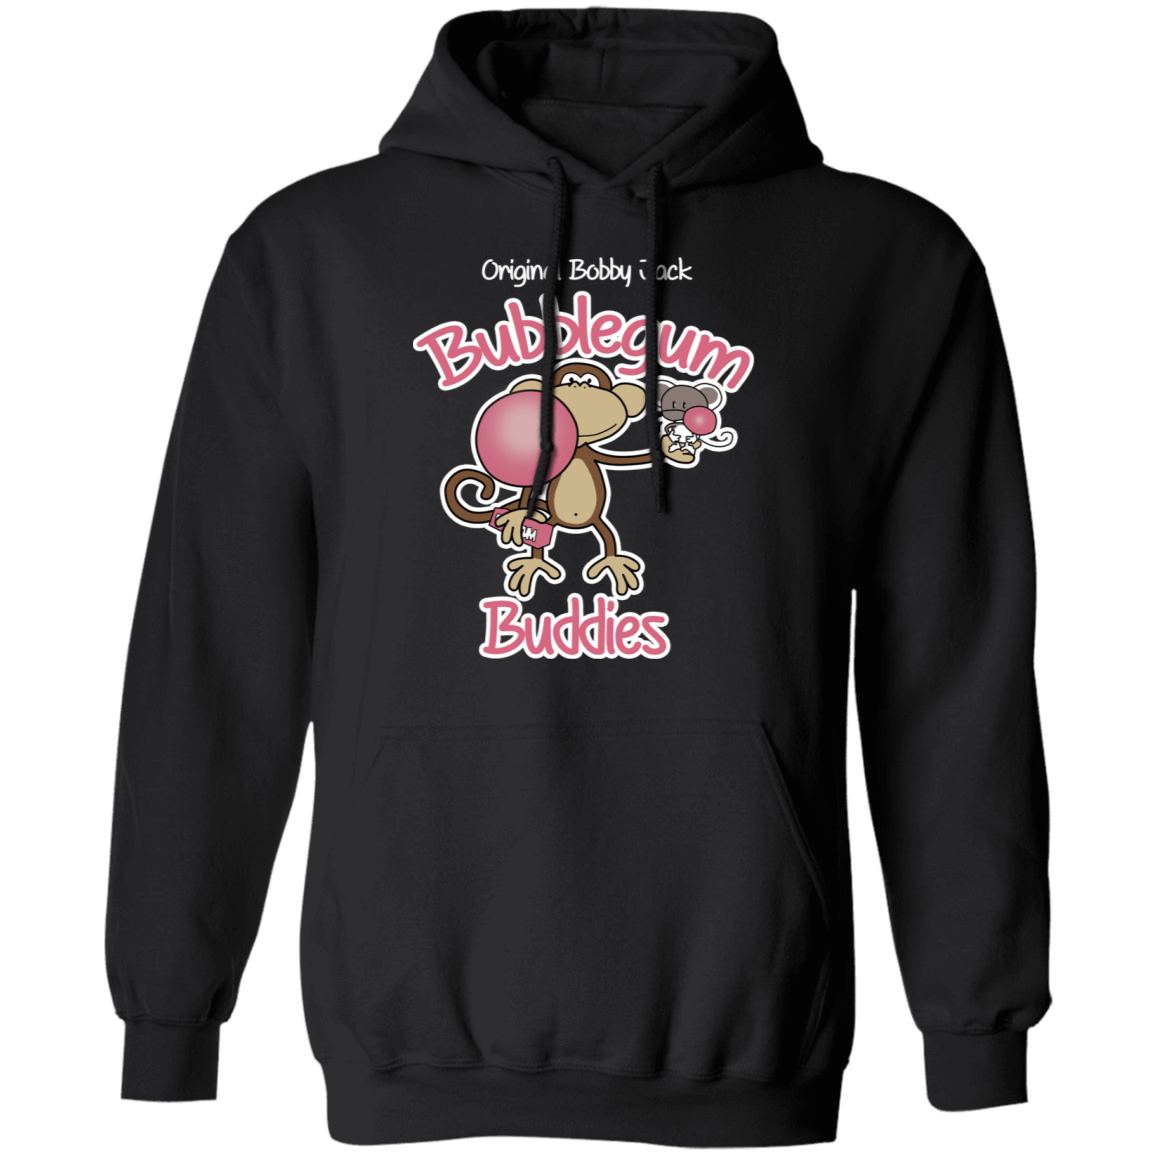 Original Bobby Jack Bubblegum Buddies Monkey T-Shirts, Hoodies, Tank 541-4740-79535891-23087 - Tee Ript